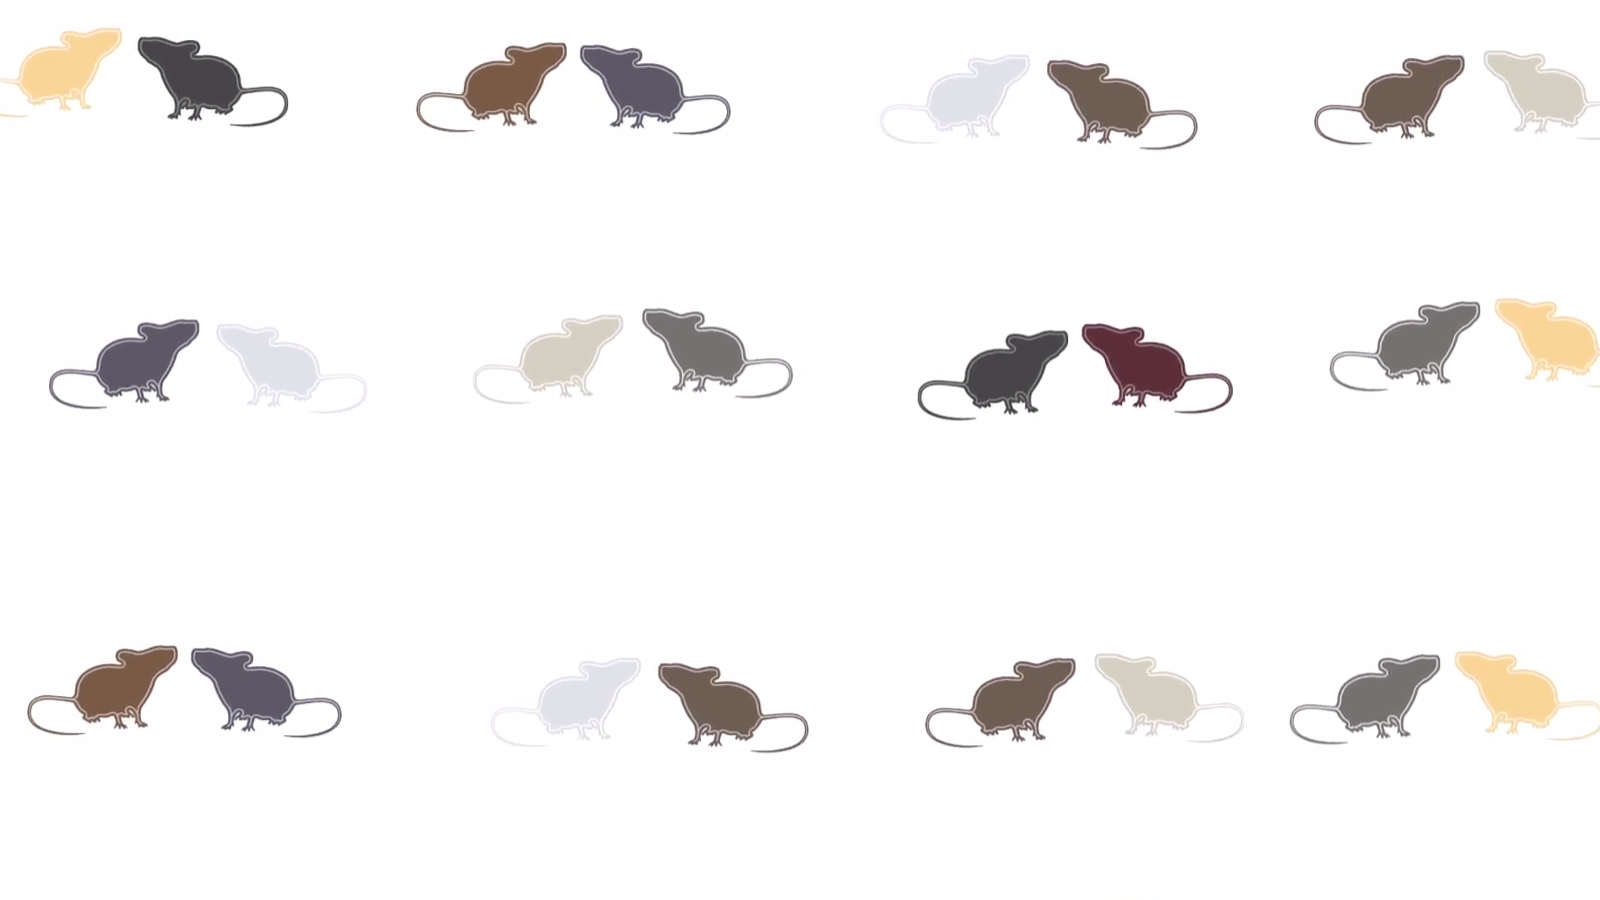 April the how and why of research with diversity mouse strains and populations